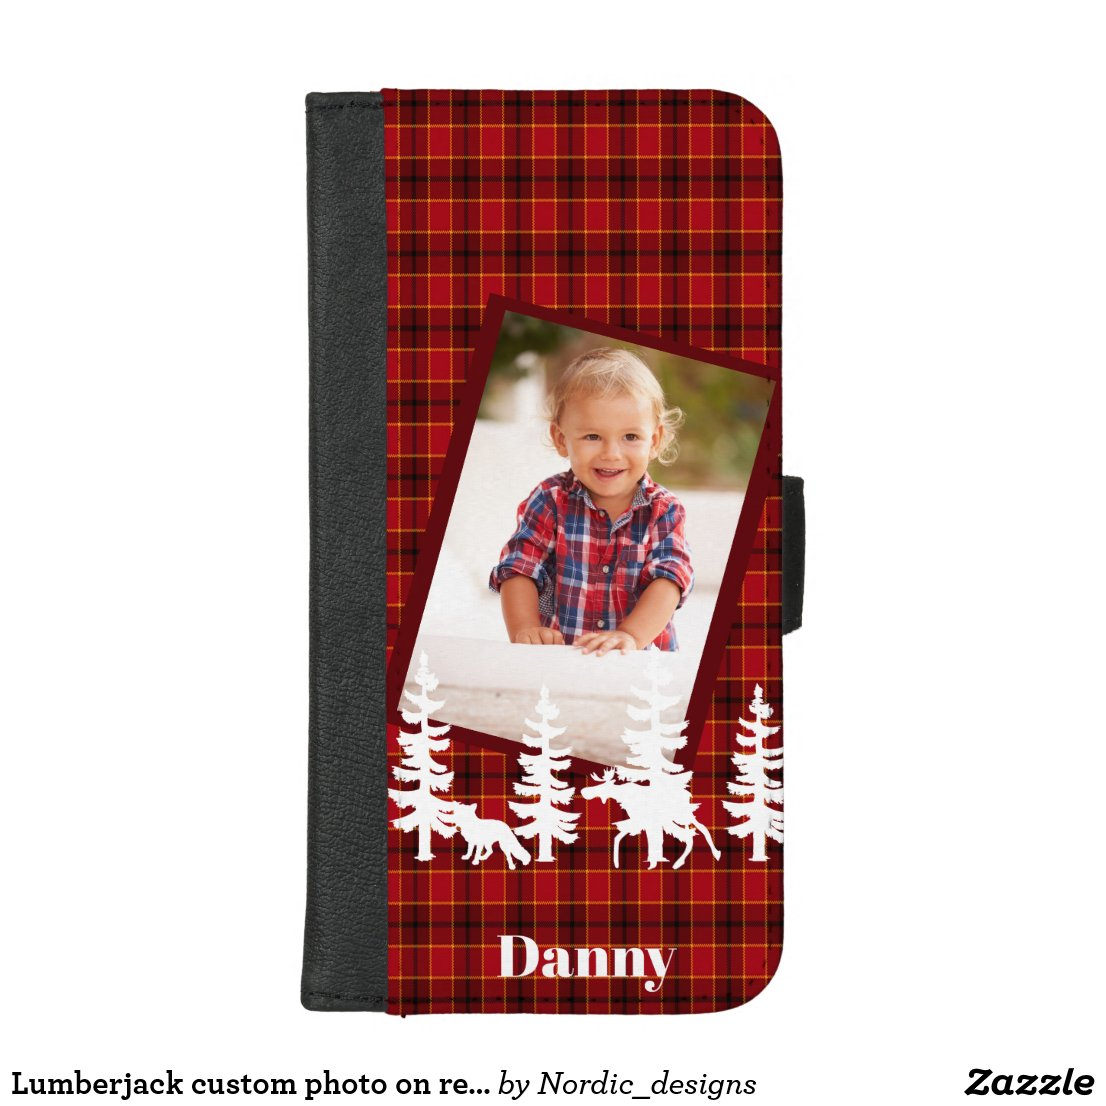 Lumberjack custom photo on red plaid buffalo check iPhone 8/7 plus wallet case